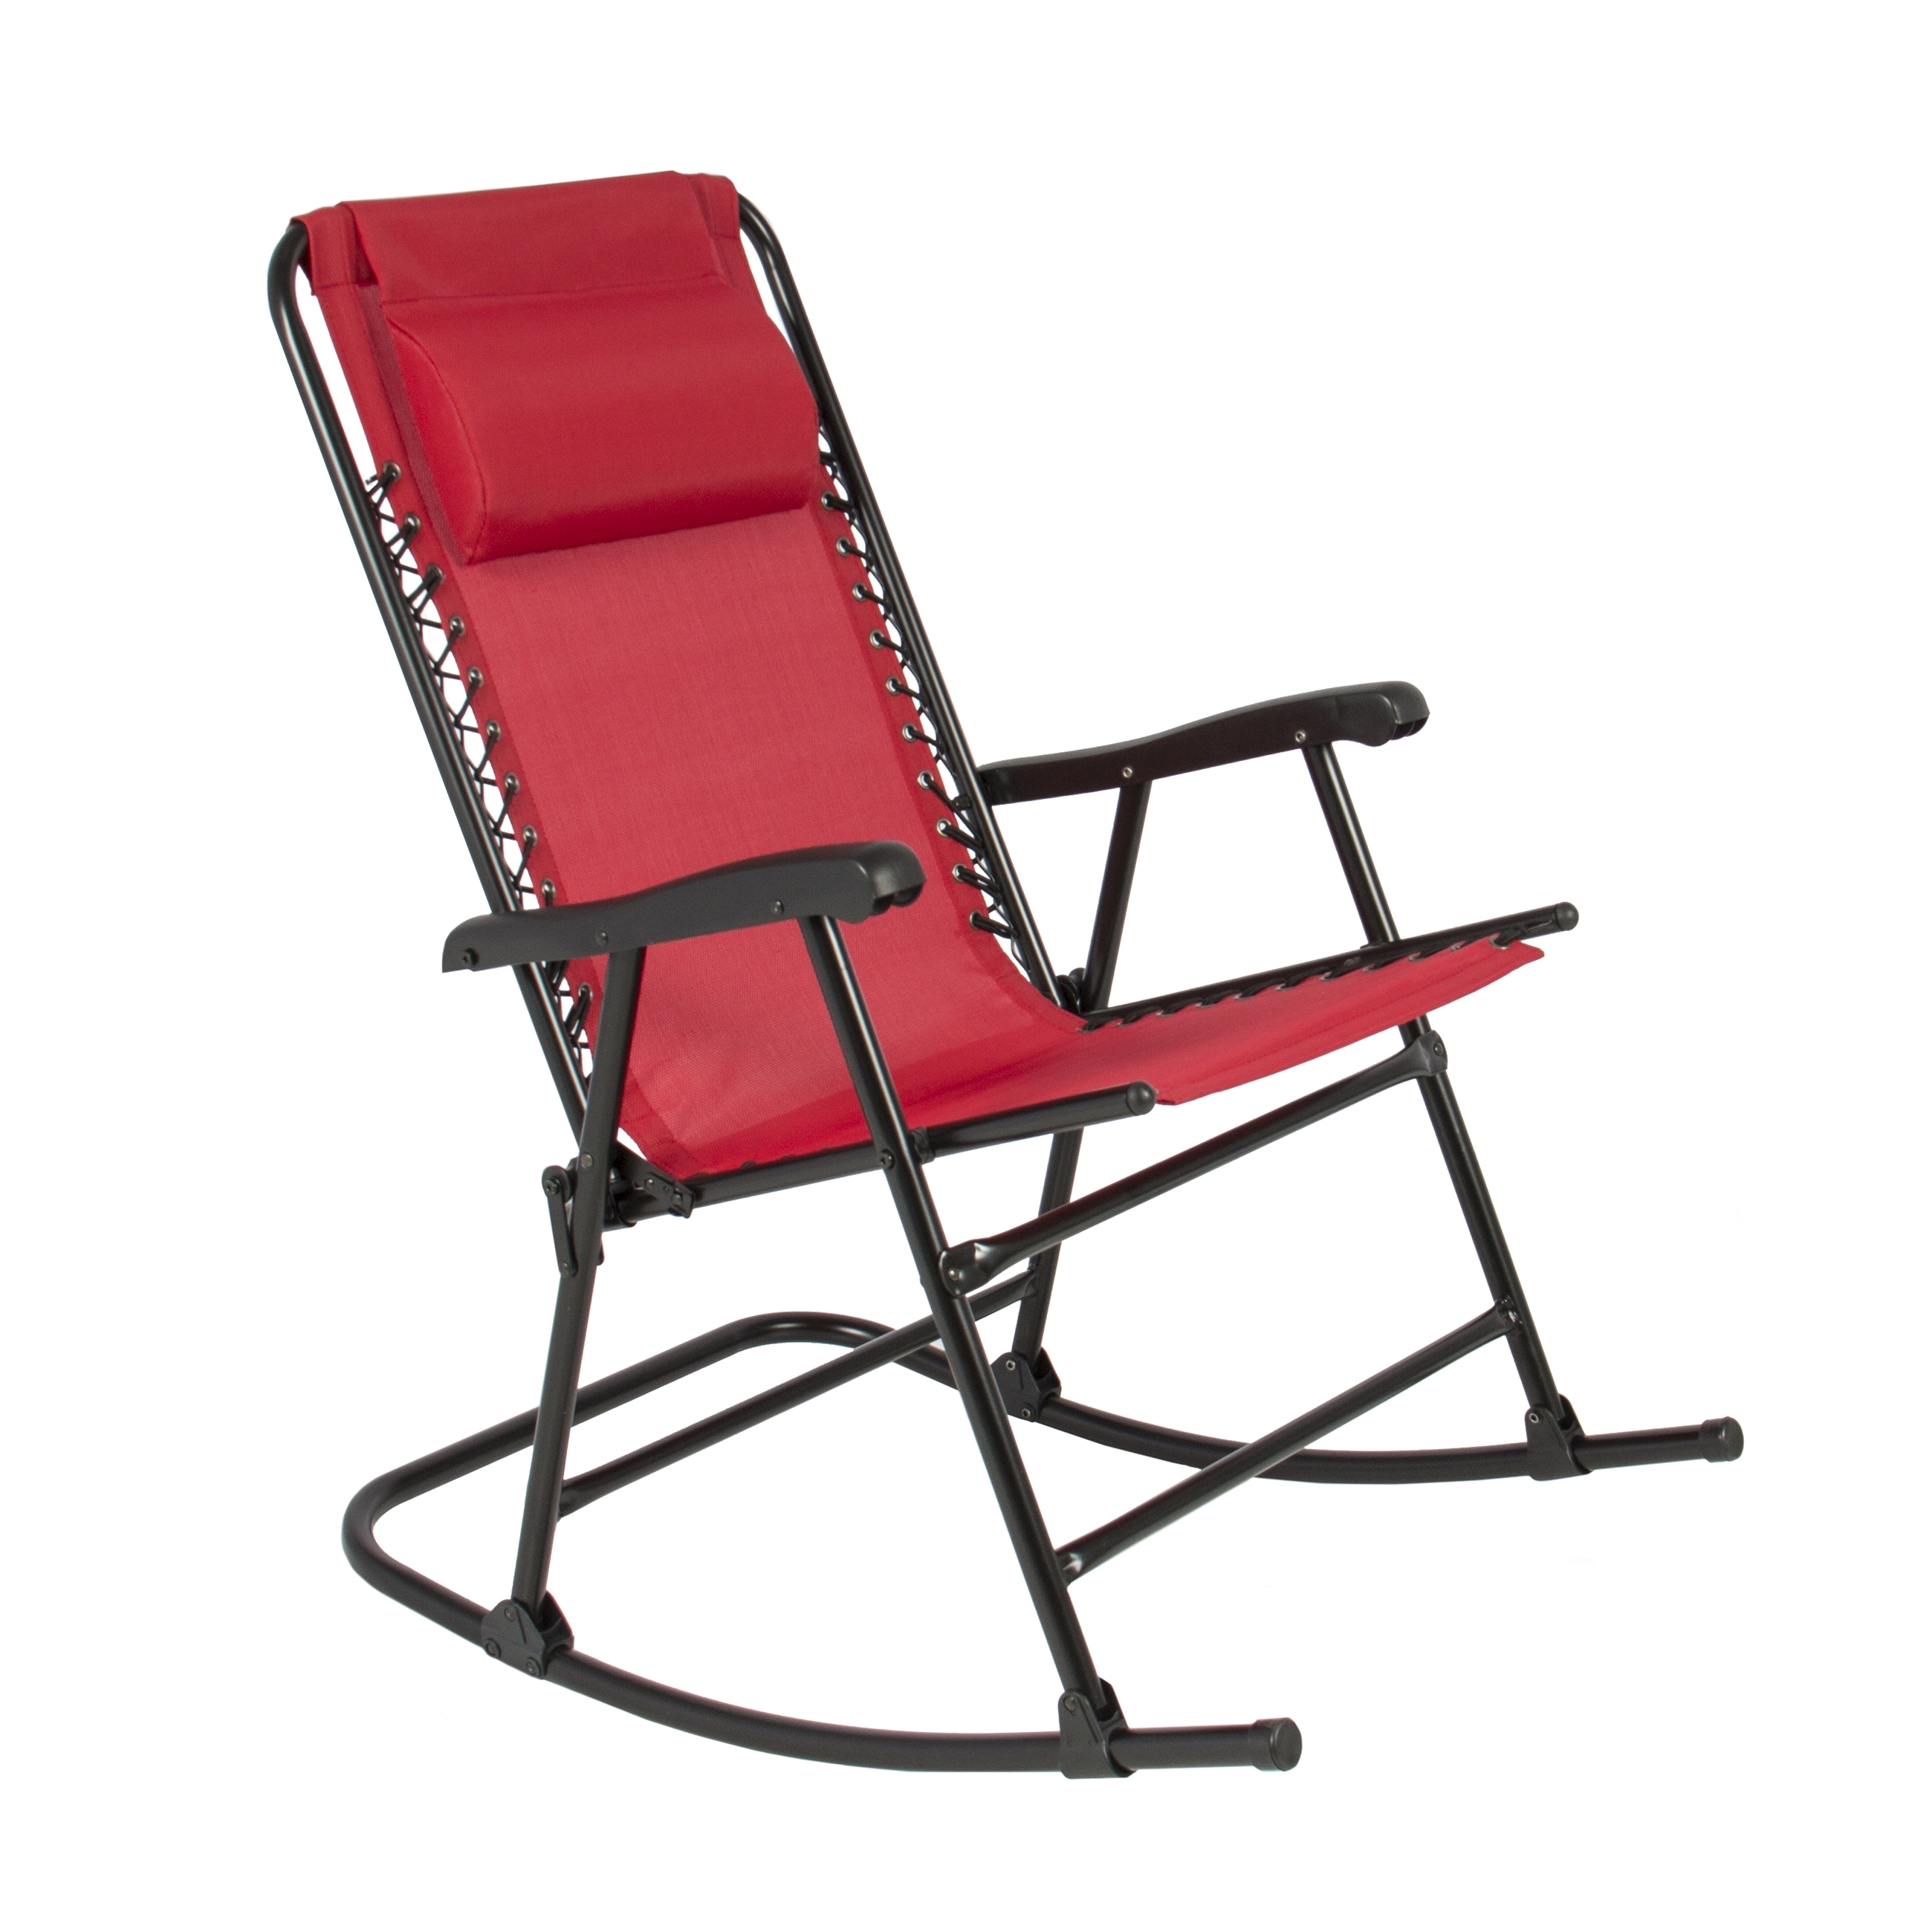 Great Rocking Patio Chairs Outdoor Wicker Rocking Chairs Patio Regarding Stackable Patio Rocking Chairs (View 7 of 15)